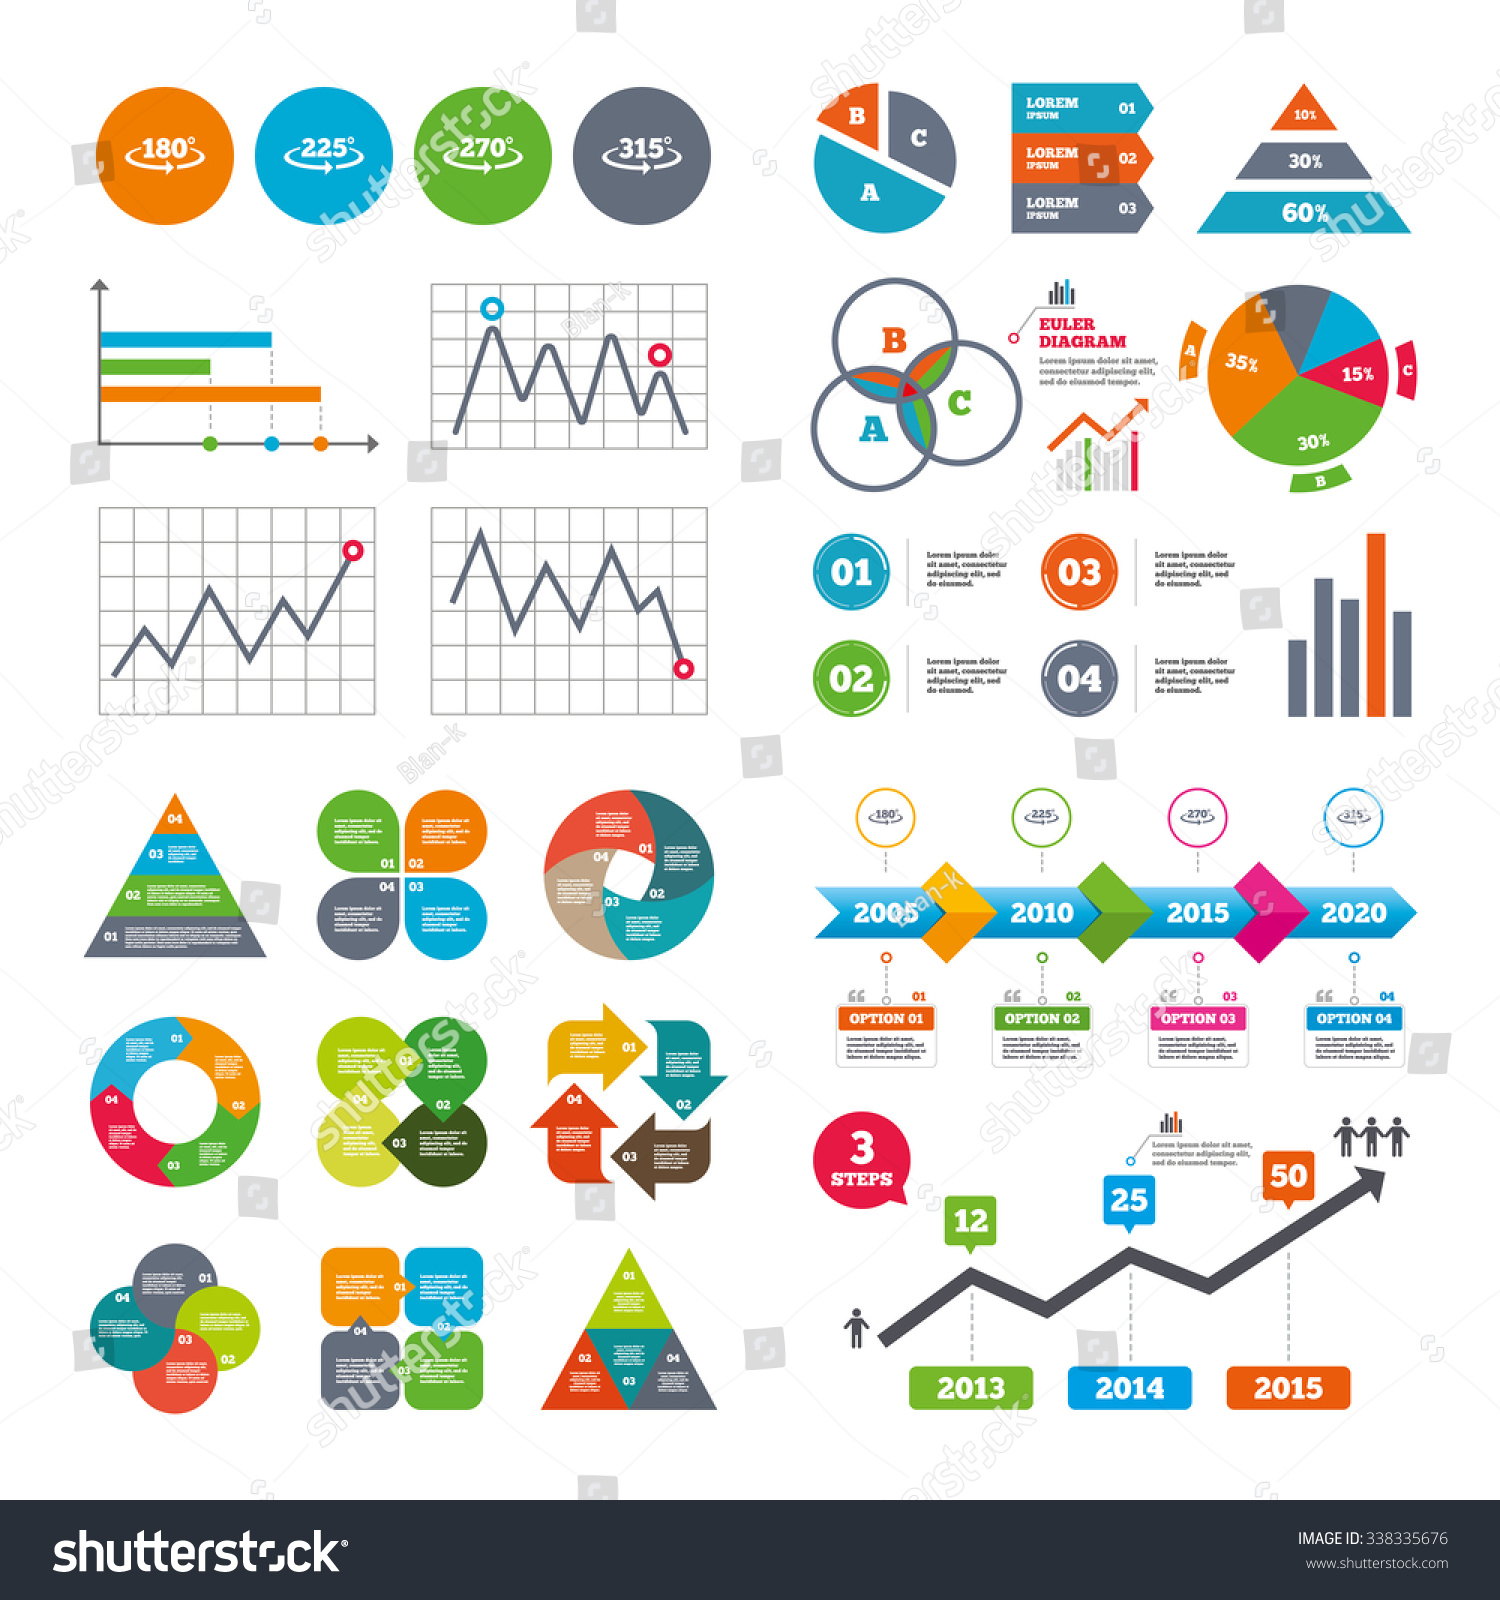 Business data pie charts graphs angle stock illustration 338335676 business data pie charts graphs angle stock illustration 338335676 shutterstock nvjuhfo Gallery